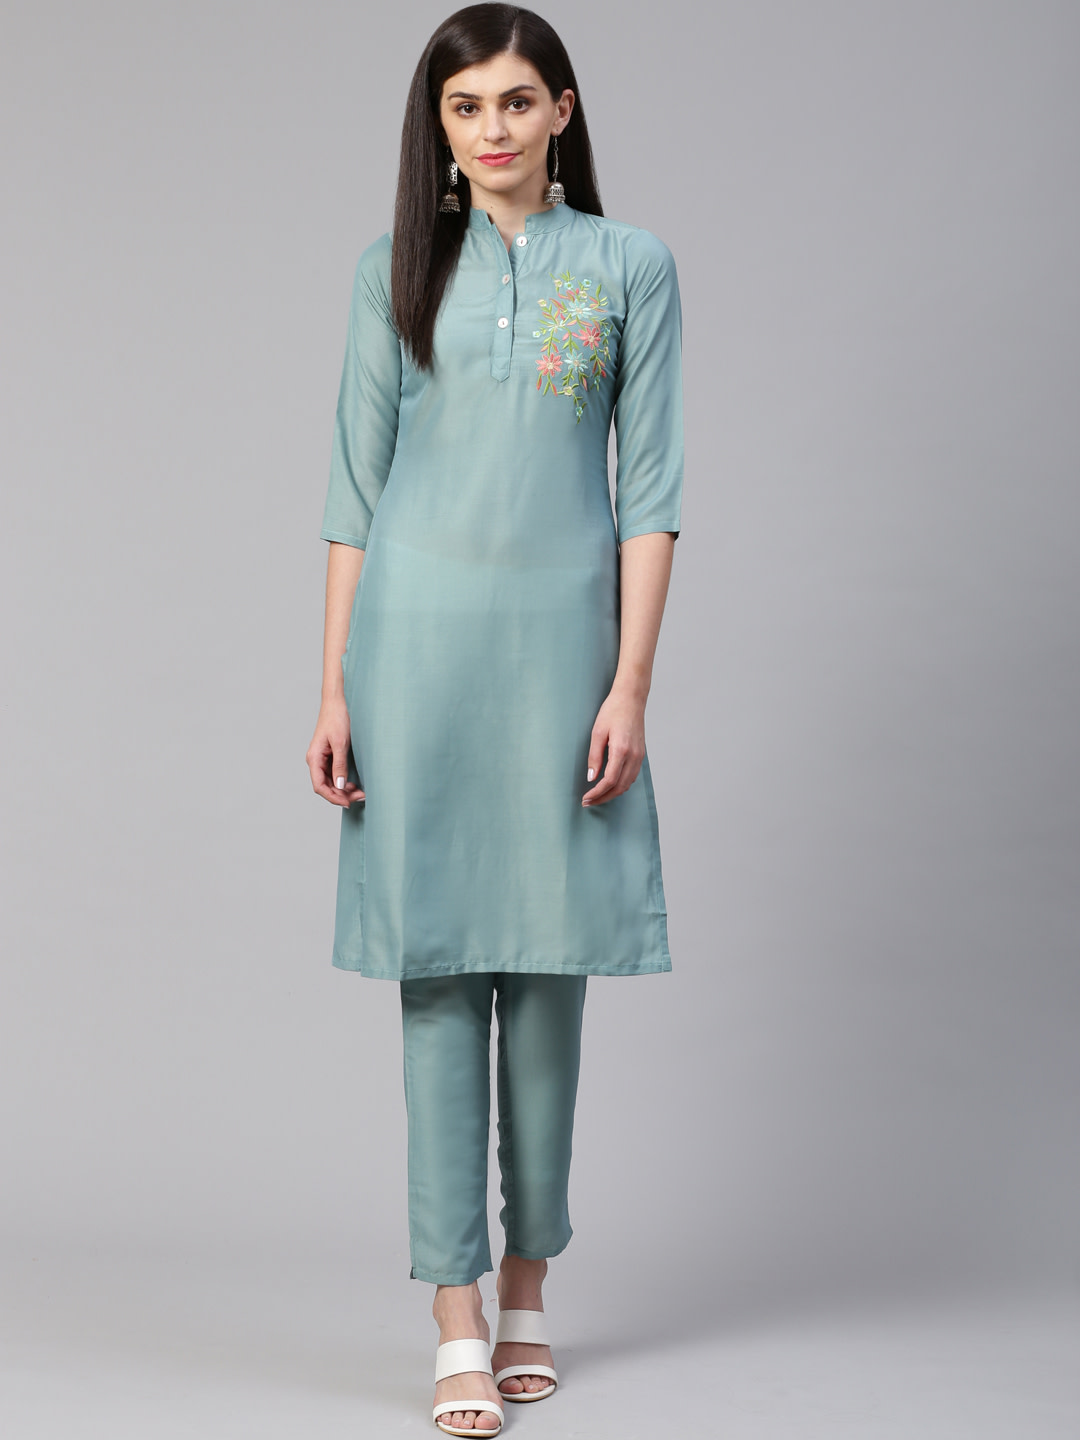 Jompers |  Jompers® Women Green Cotton Silk Embroidered Kurta with pants set